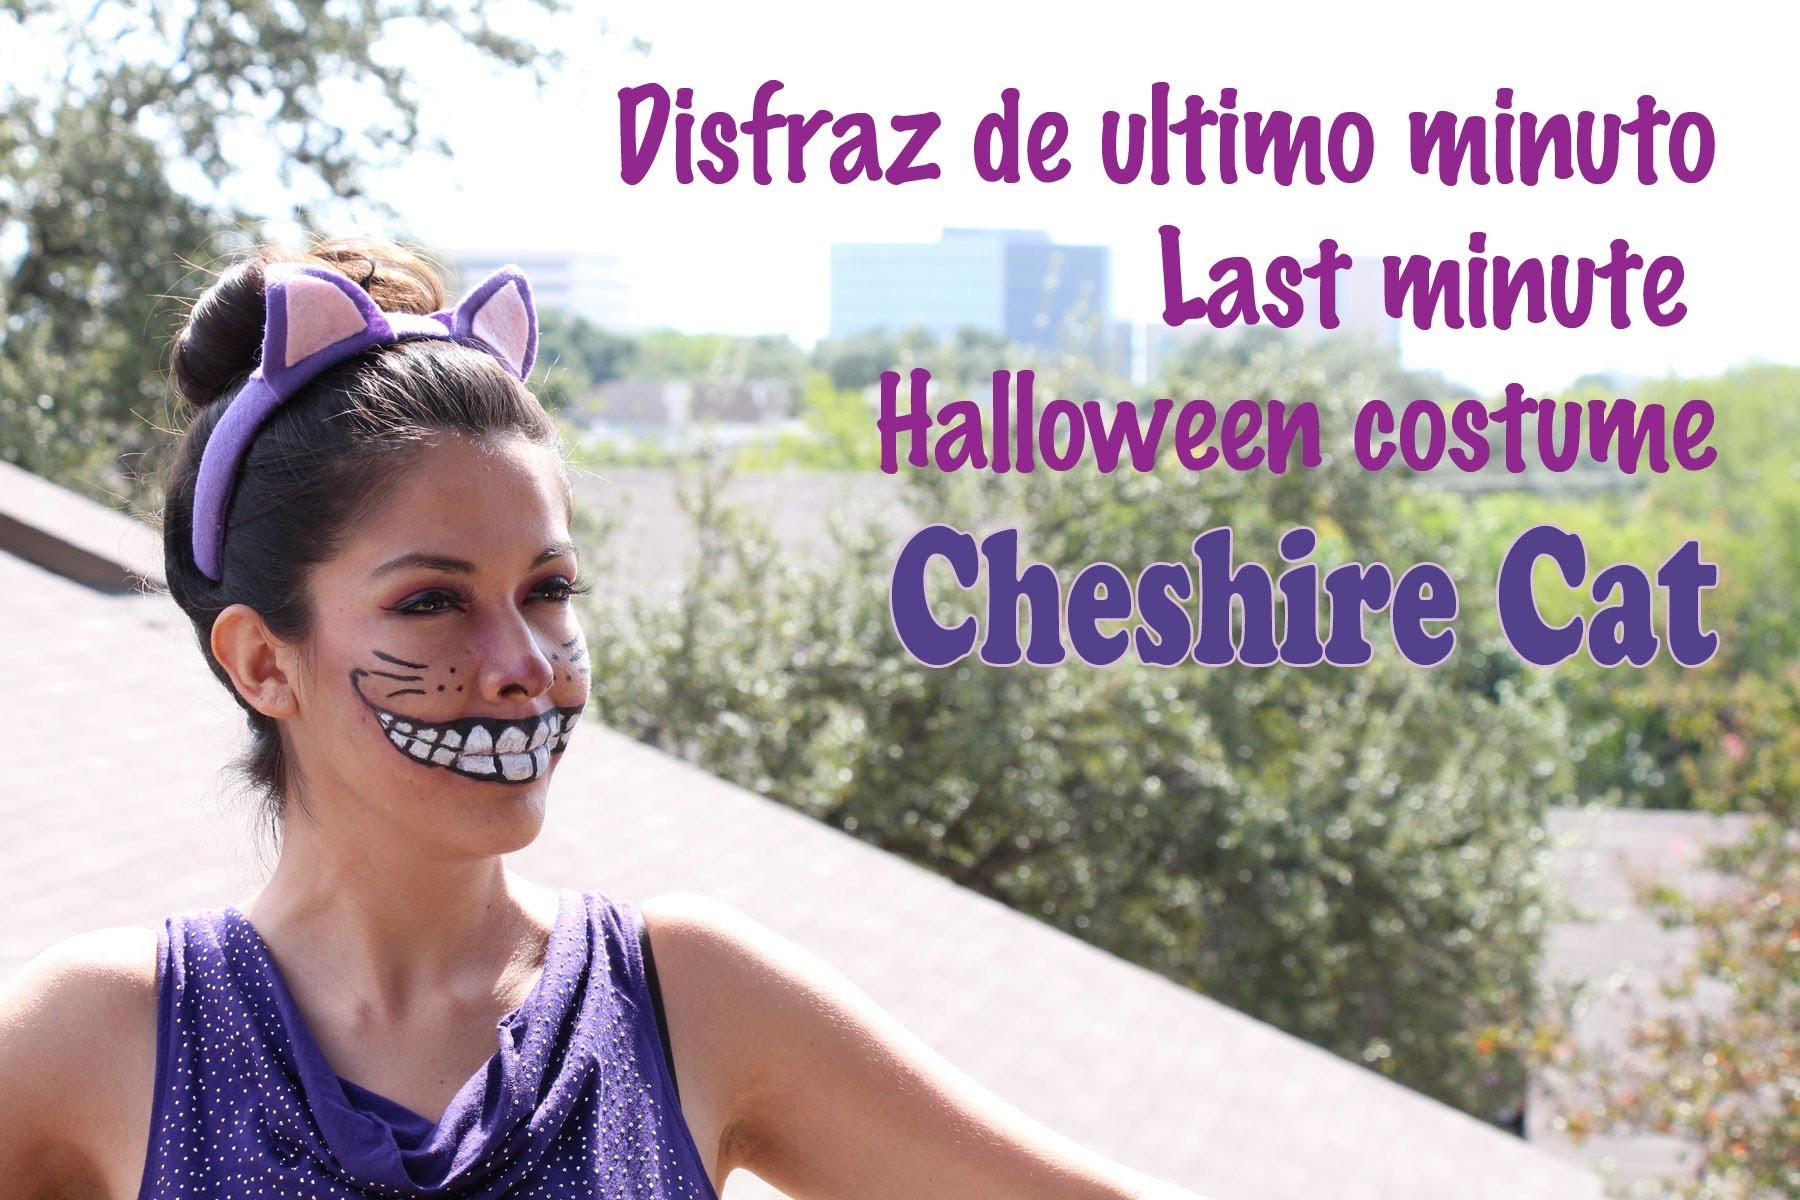 Last minute halloween costume, dizfras de ultimo minuto, Cheshire cat